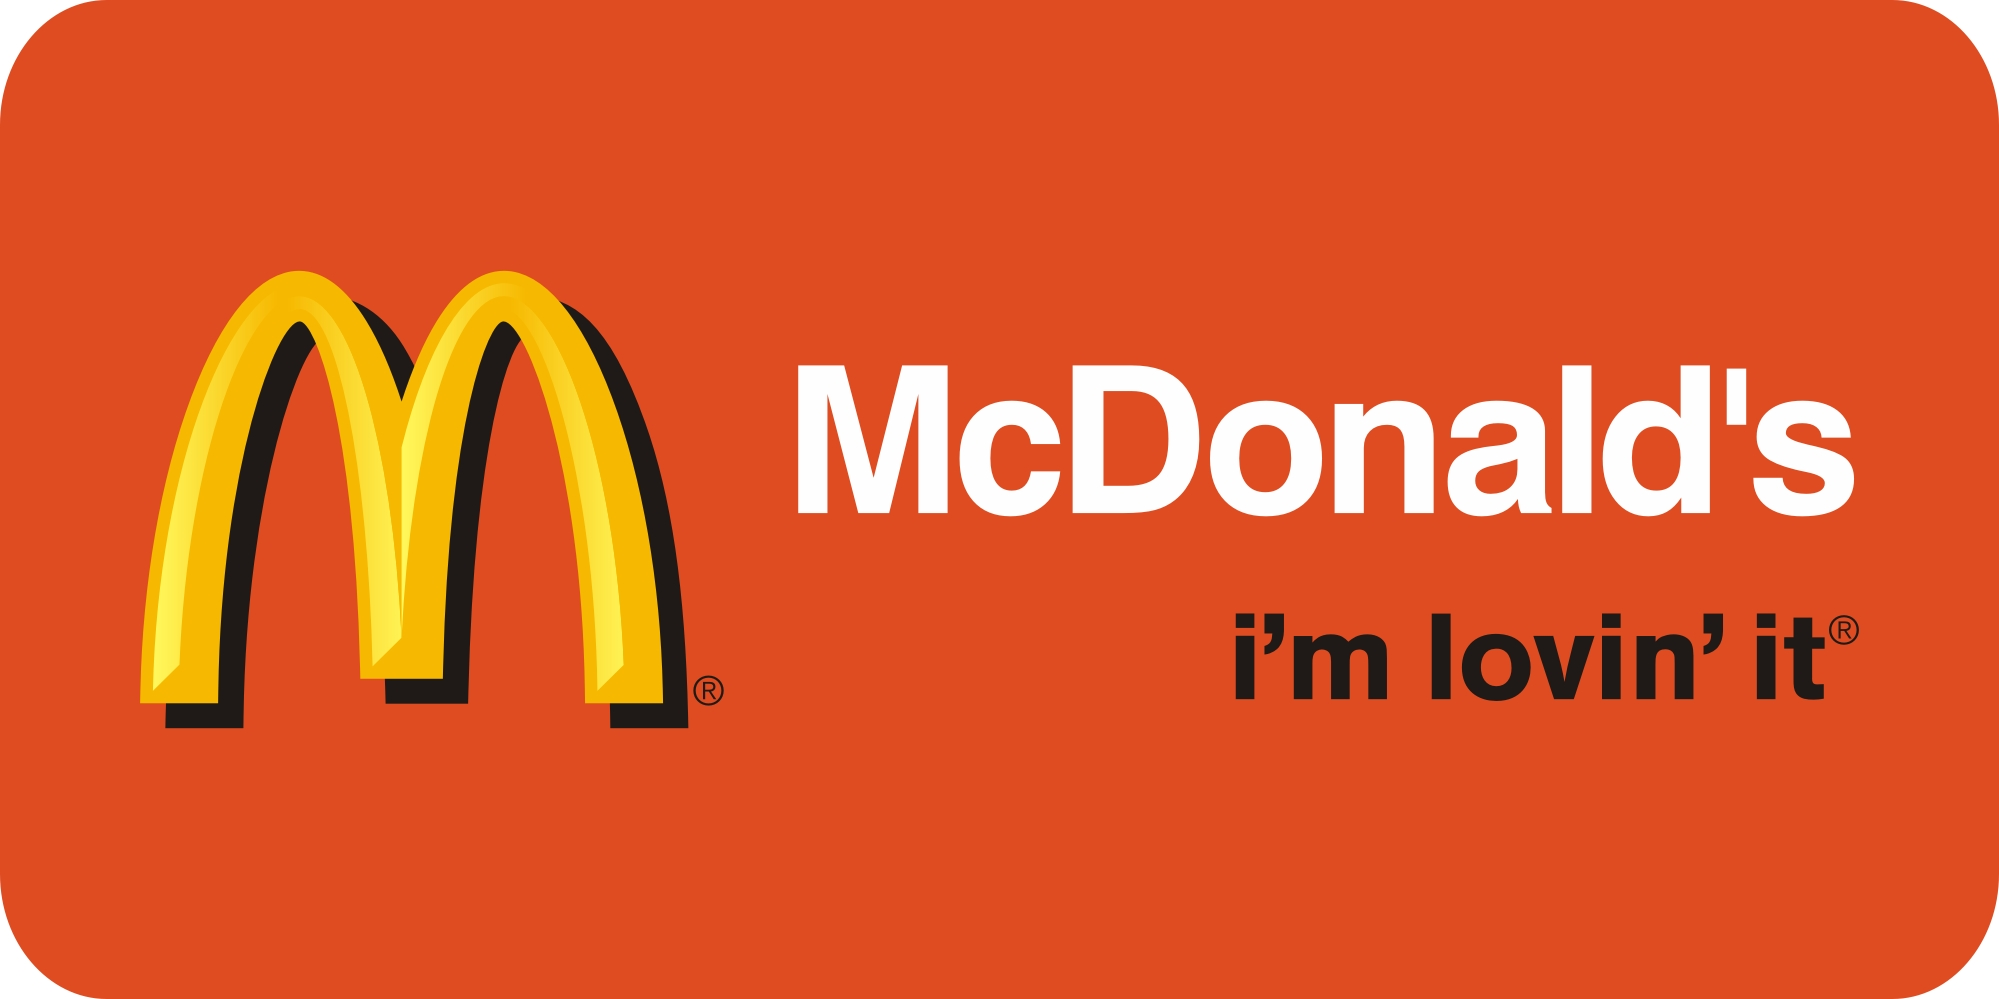 McDonalds (MCD) Stock   Produces Another Big Red Flag - Warrior Trading News